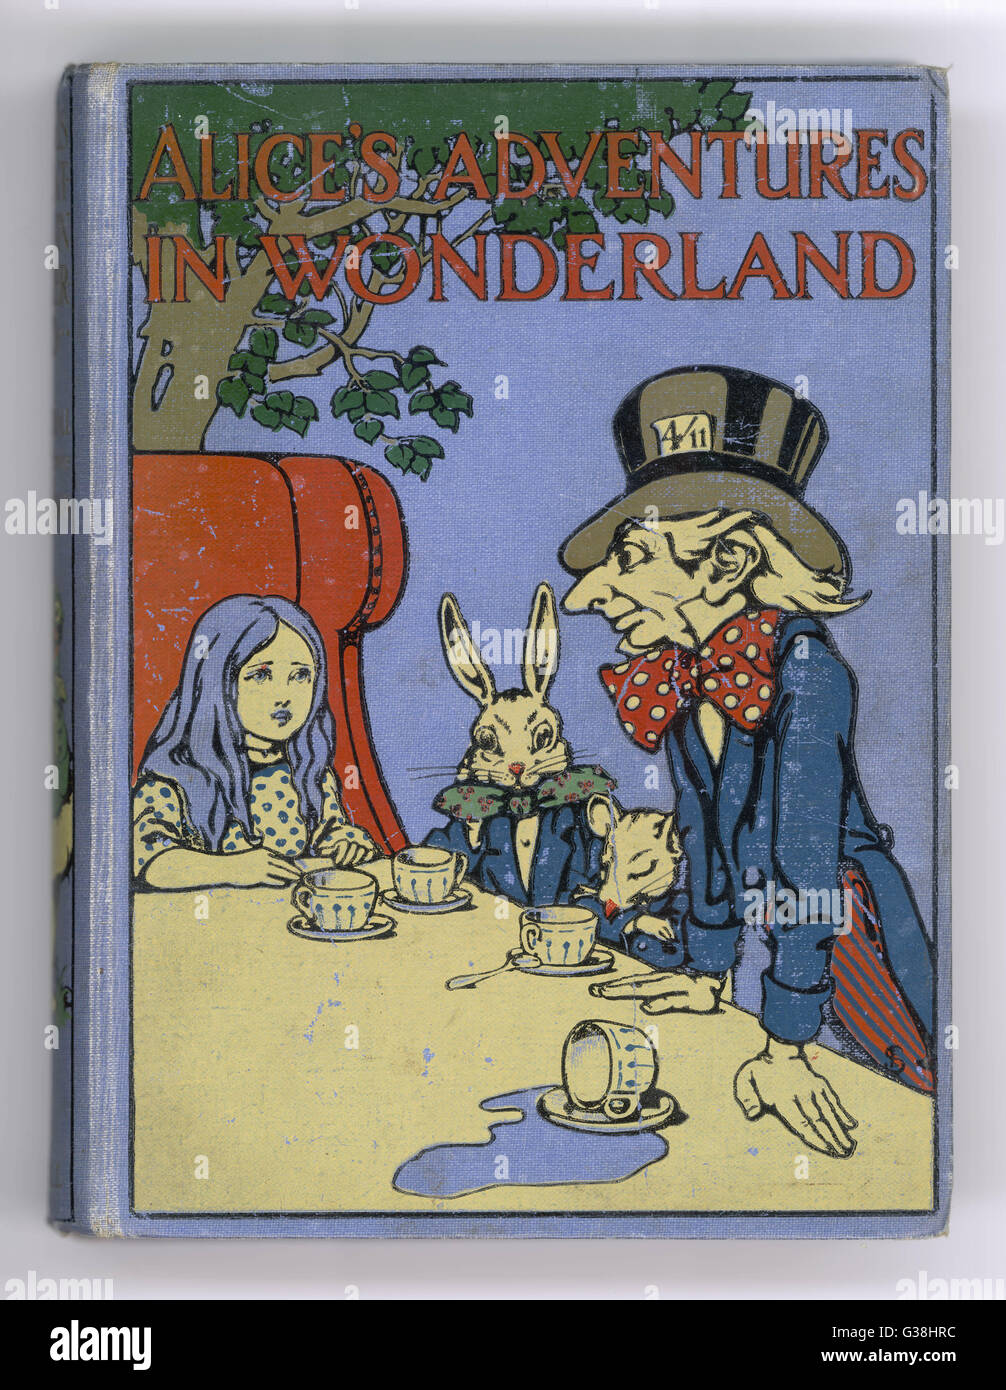 The Mad Hatter's Tea Party is  featured on the cover of the  1916 edition published by  Cassell        Date: - Stock Image